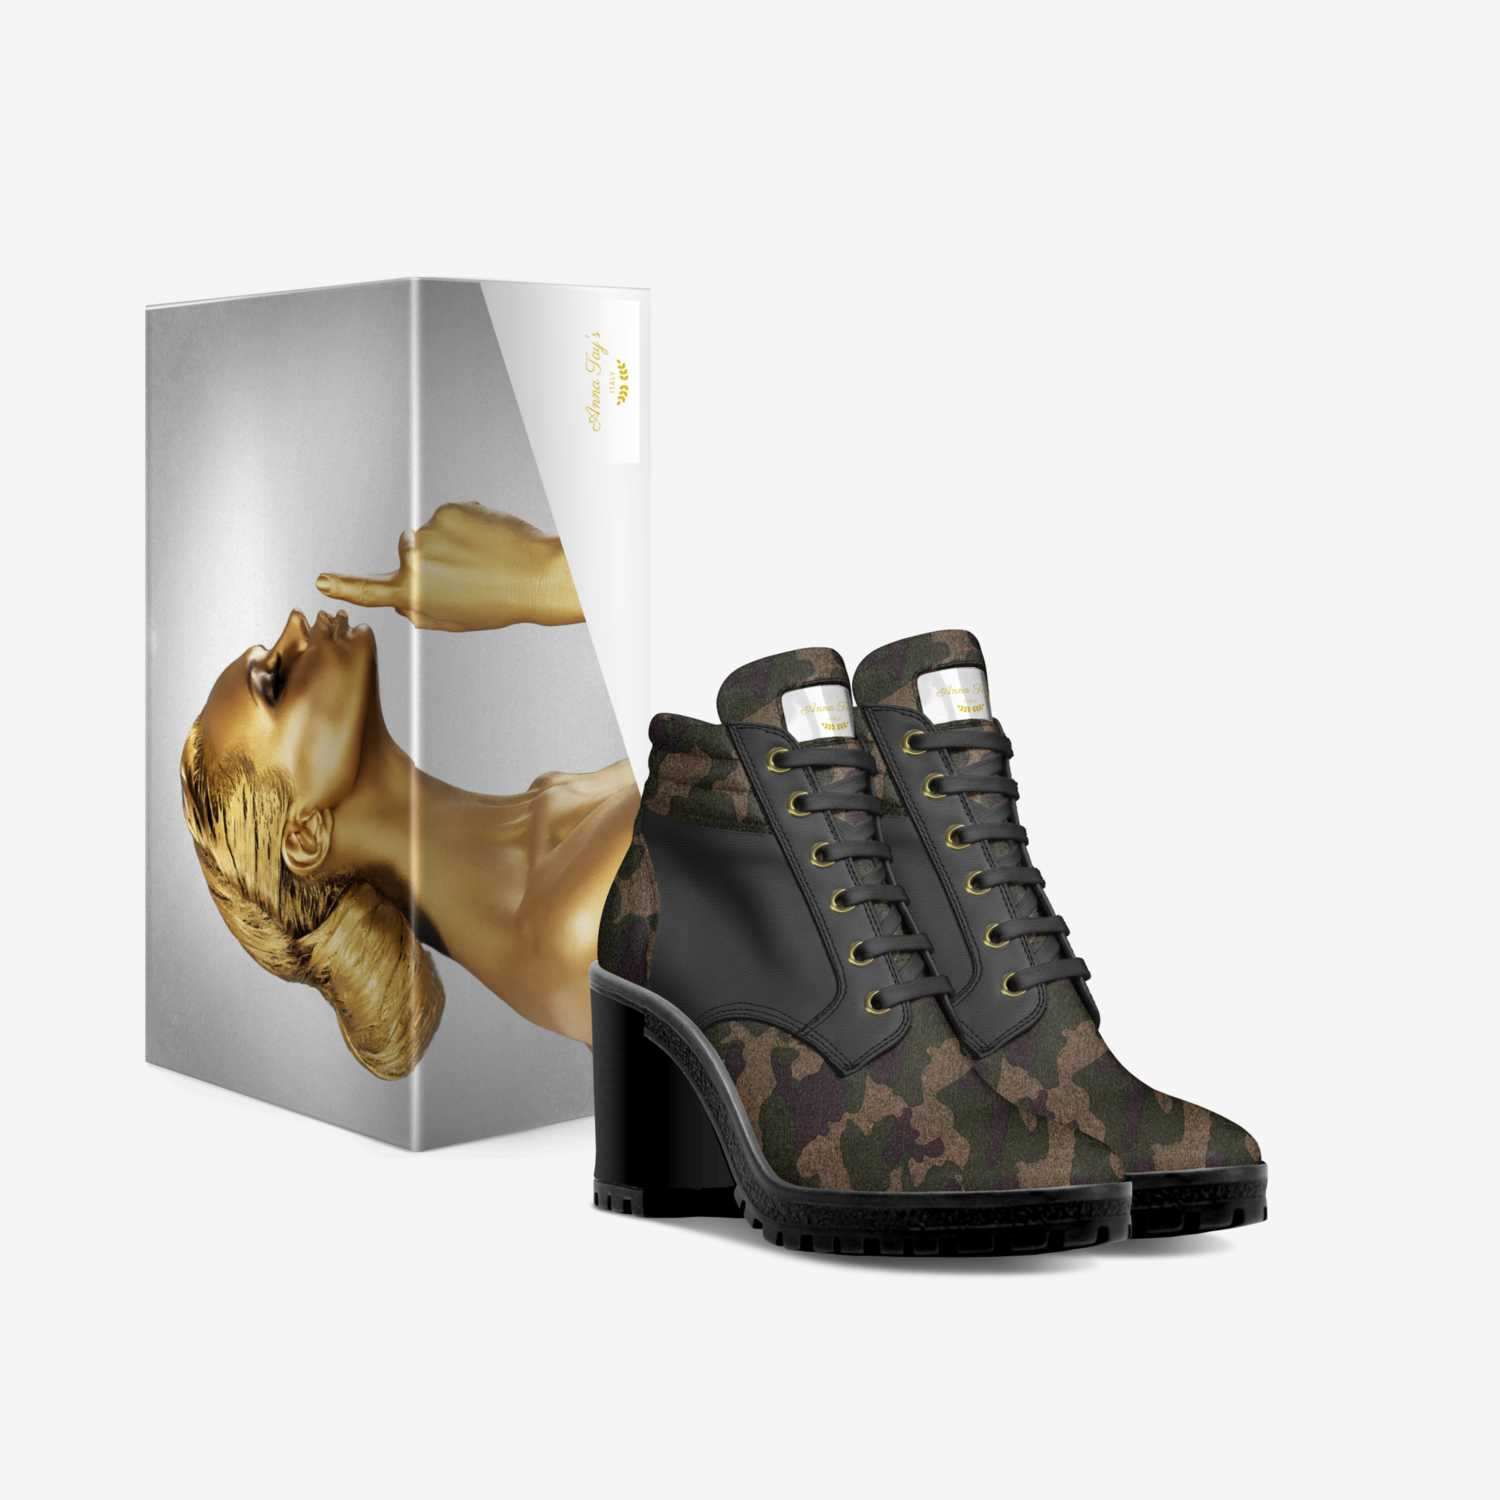 Anna Tay's custom made in Italy shoes by Quinteze Vetaw | Box view